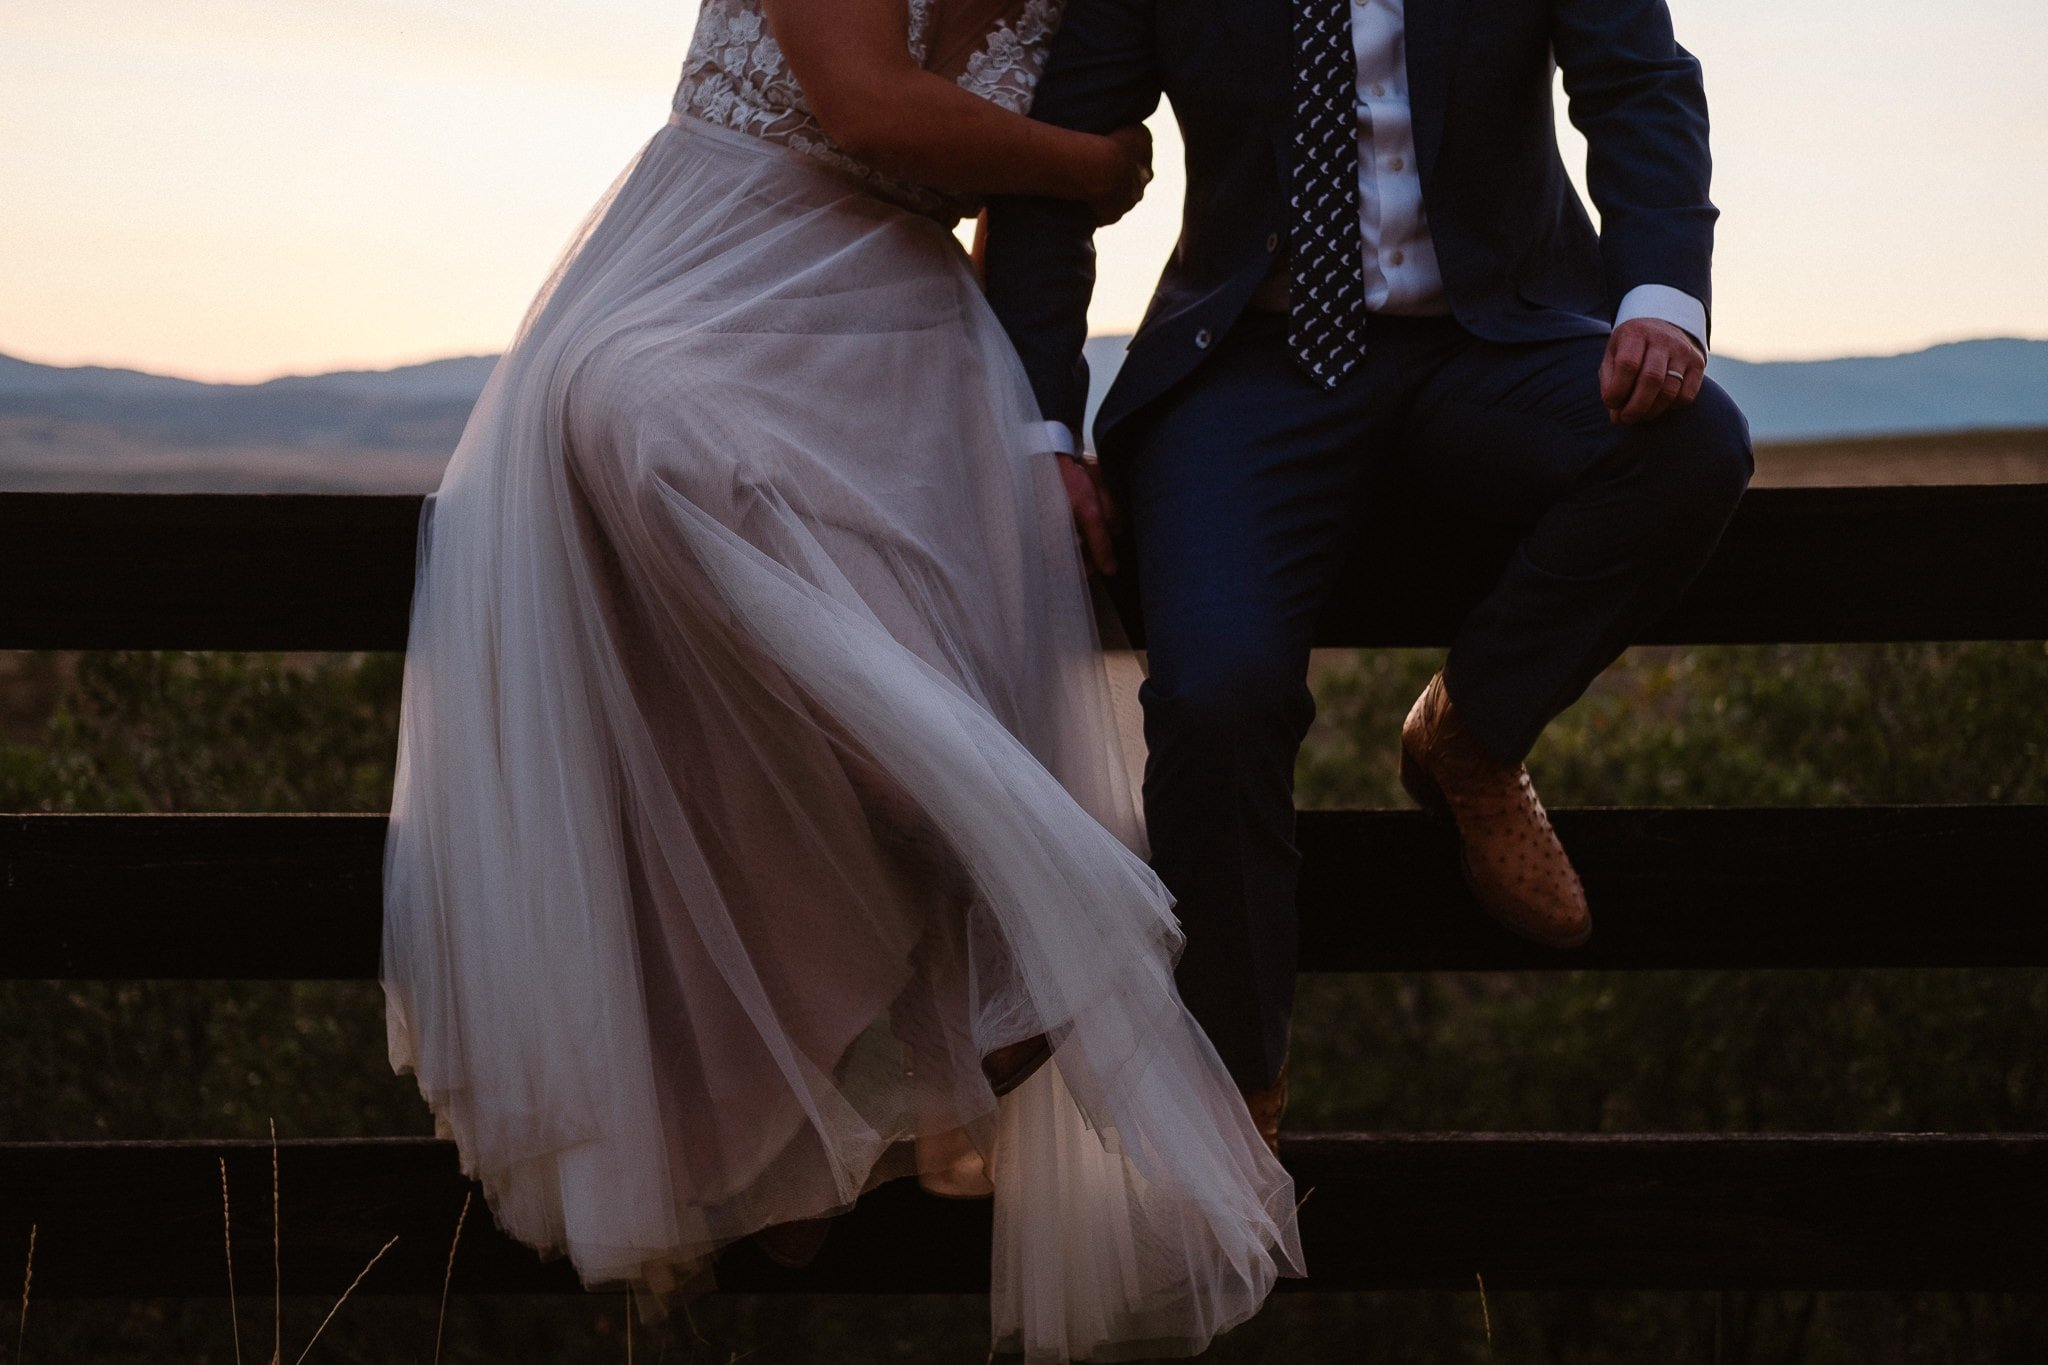 Steamboat Springs wedding photographer, La Joya Dulce wedding, Colorado ranch wedding venues, bride and groom portraits at sunset, bride and groom sitting on fence, bride and groom portraits